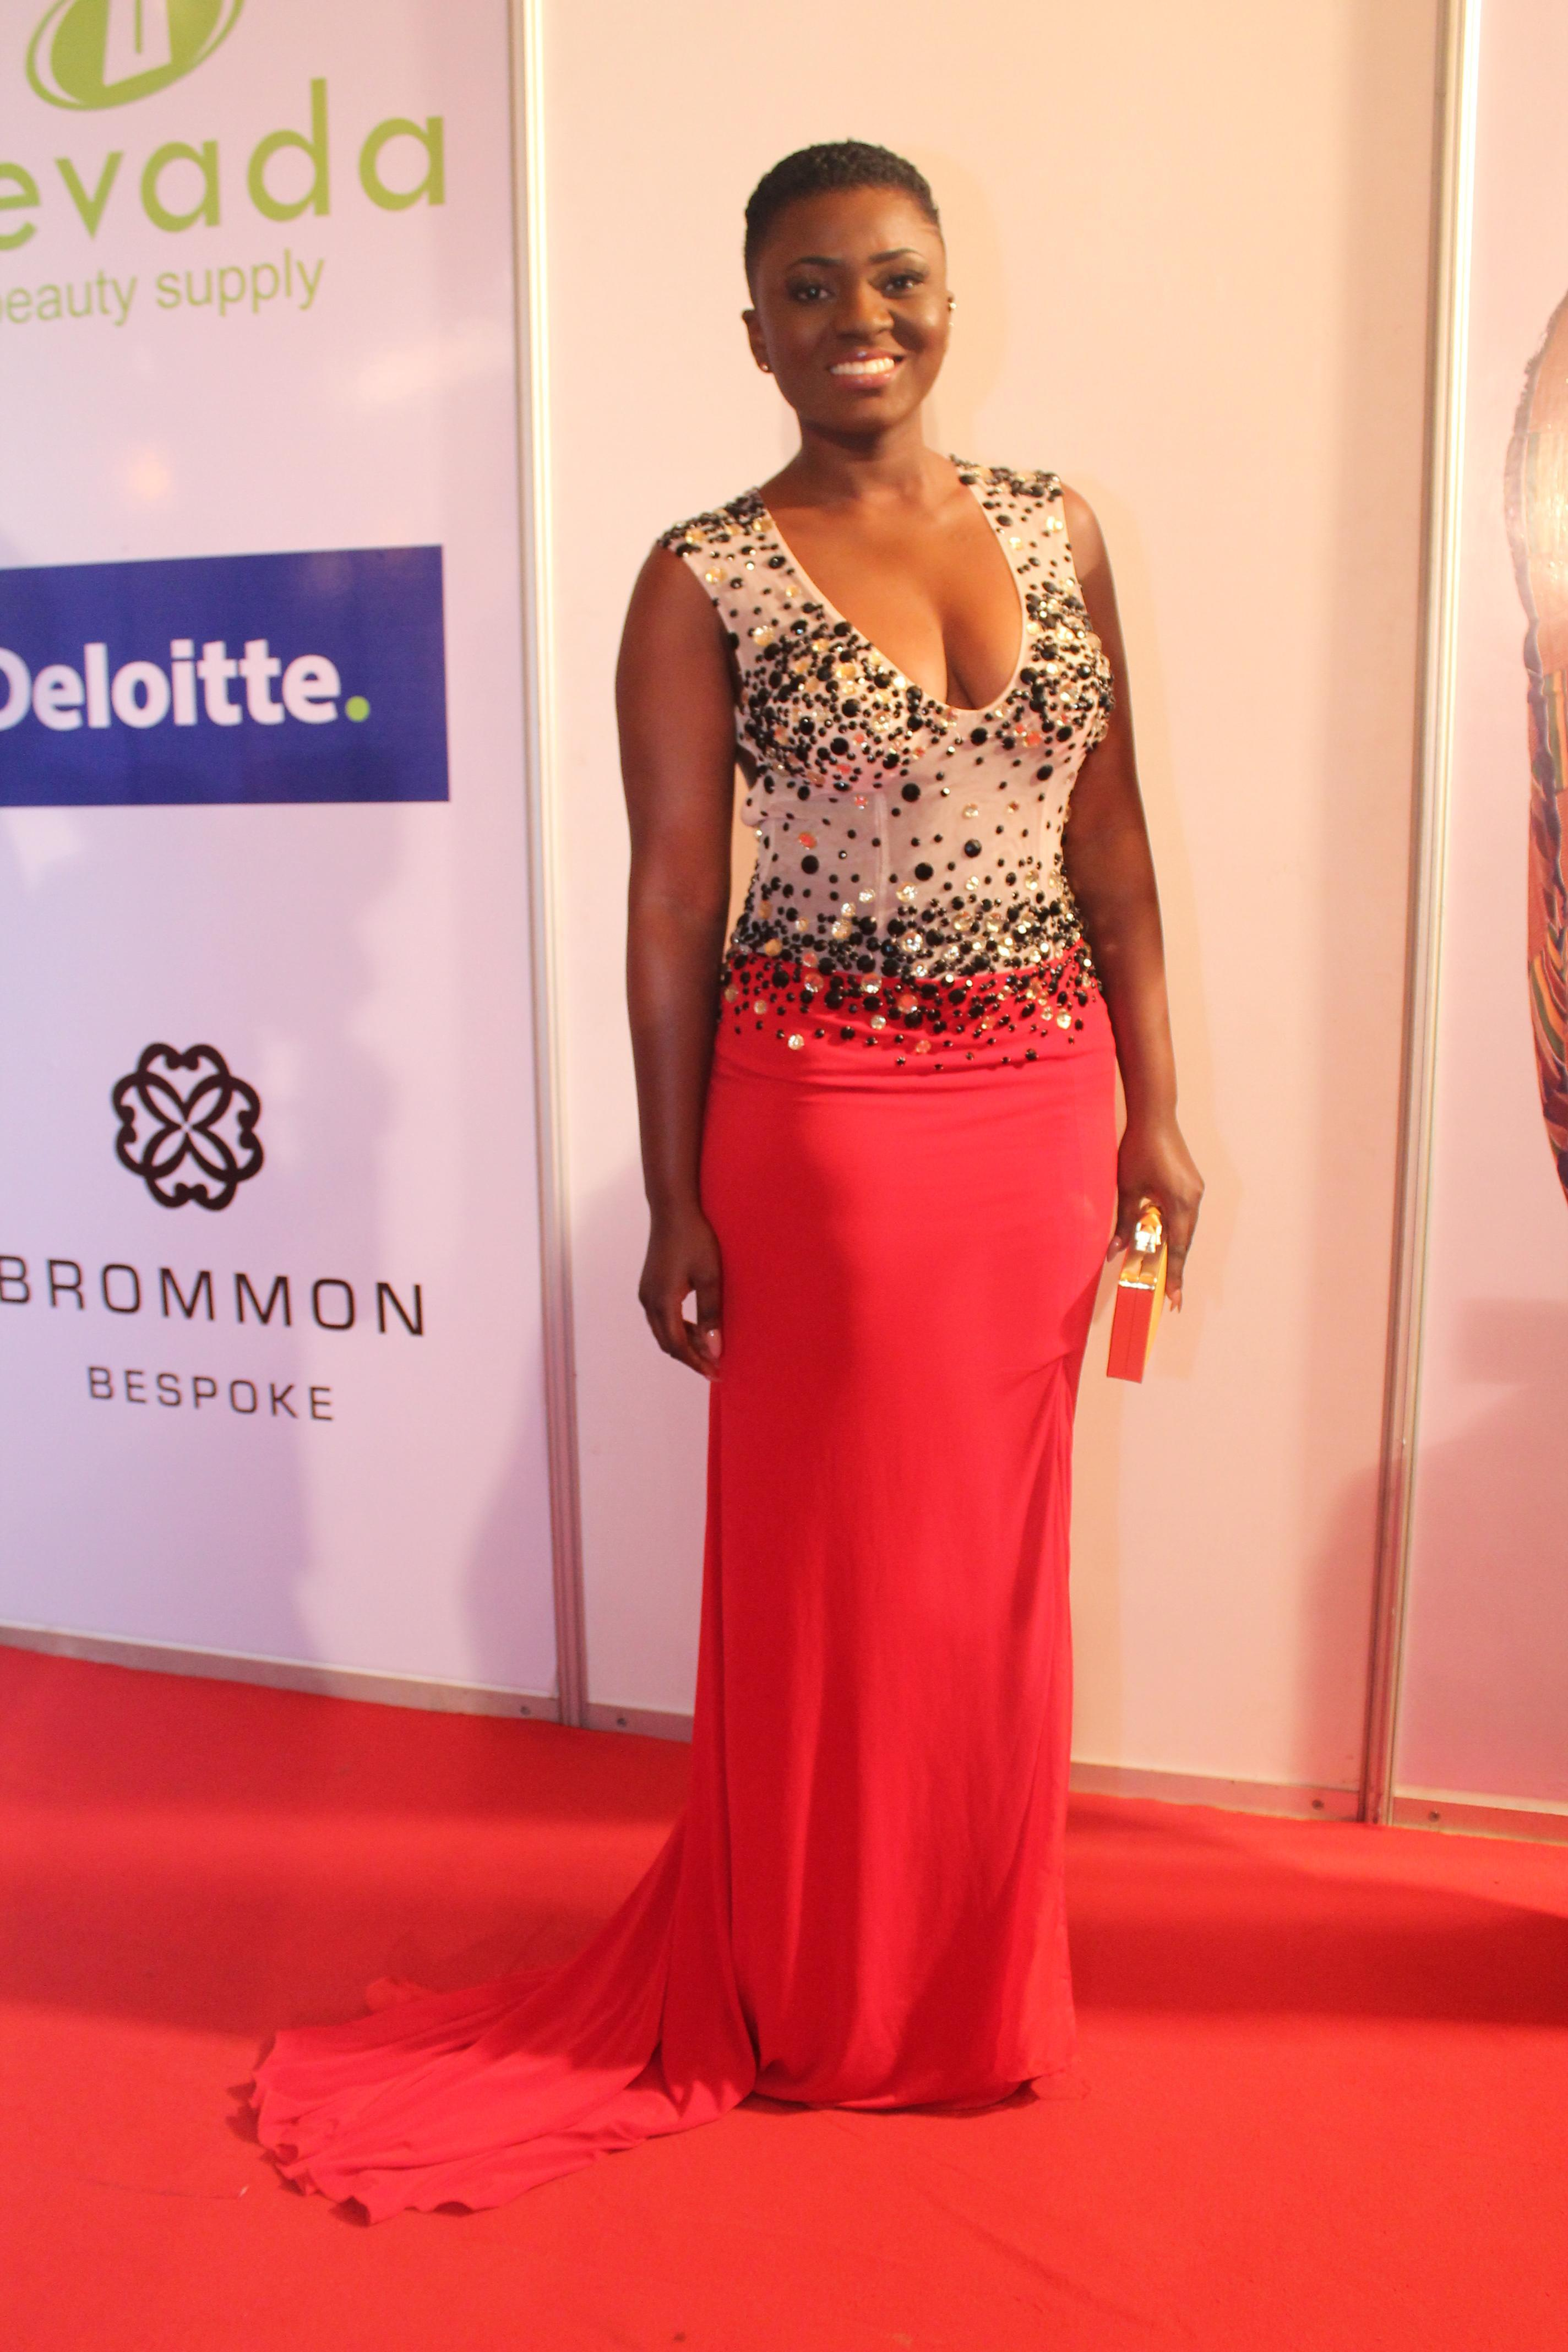 Ahuofe Patri on Red Carpet